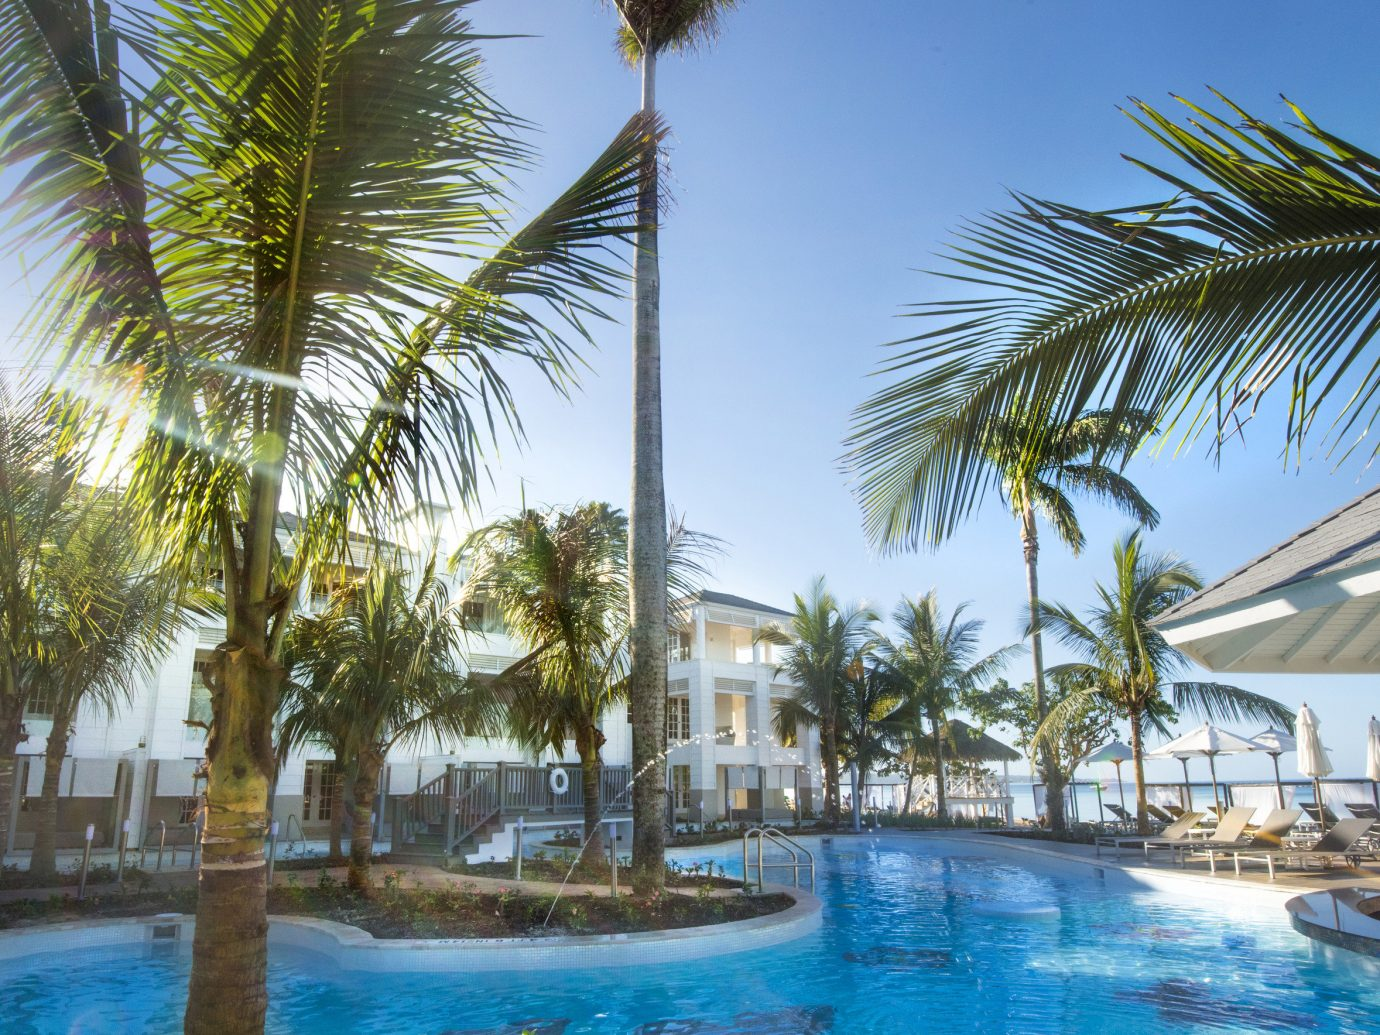 Hotels sky outdoor tree palm Resort Pool property leisure swimming pool caribbean vacation arecales plant resort town Beach palm family Lagoon condominium estate marina lined swimming shade